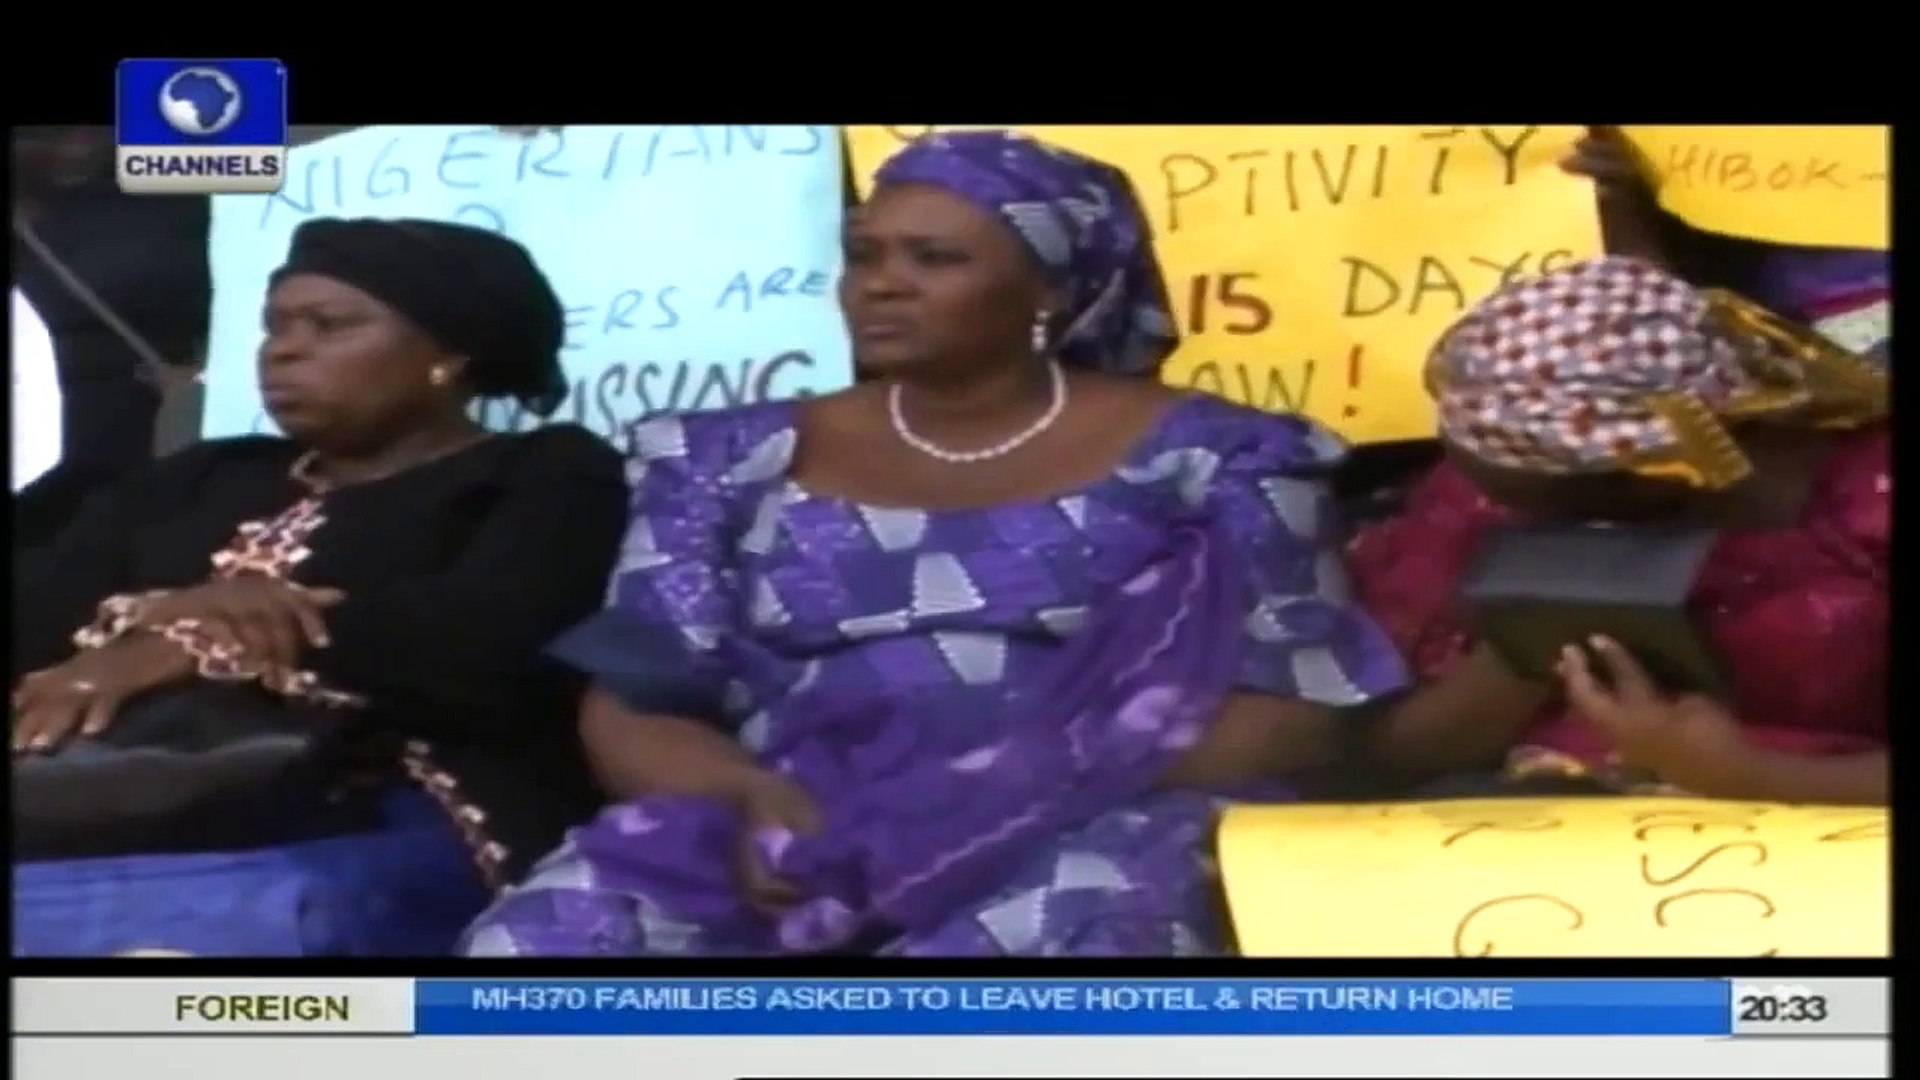 The Gavel: Chibok Girls Abduction Triggering Protests, With 'Bring Back Our Girls' Demand